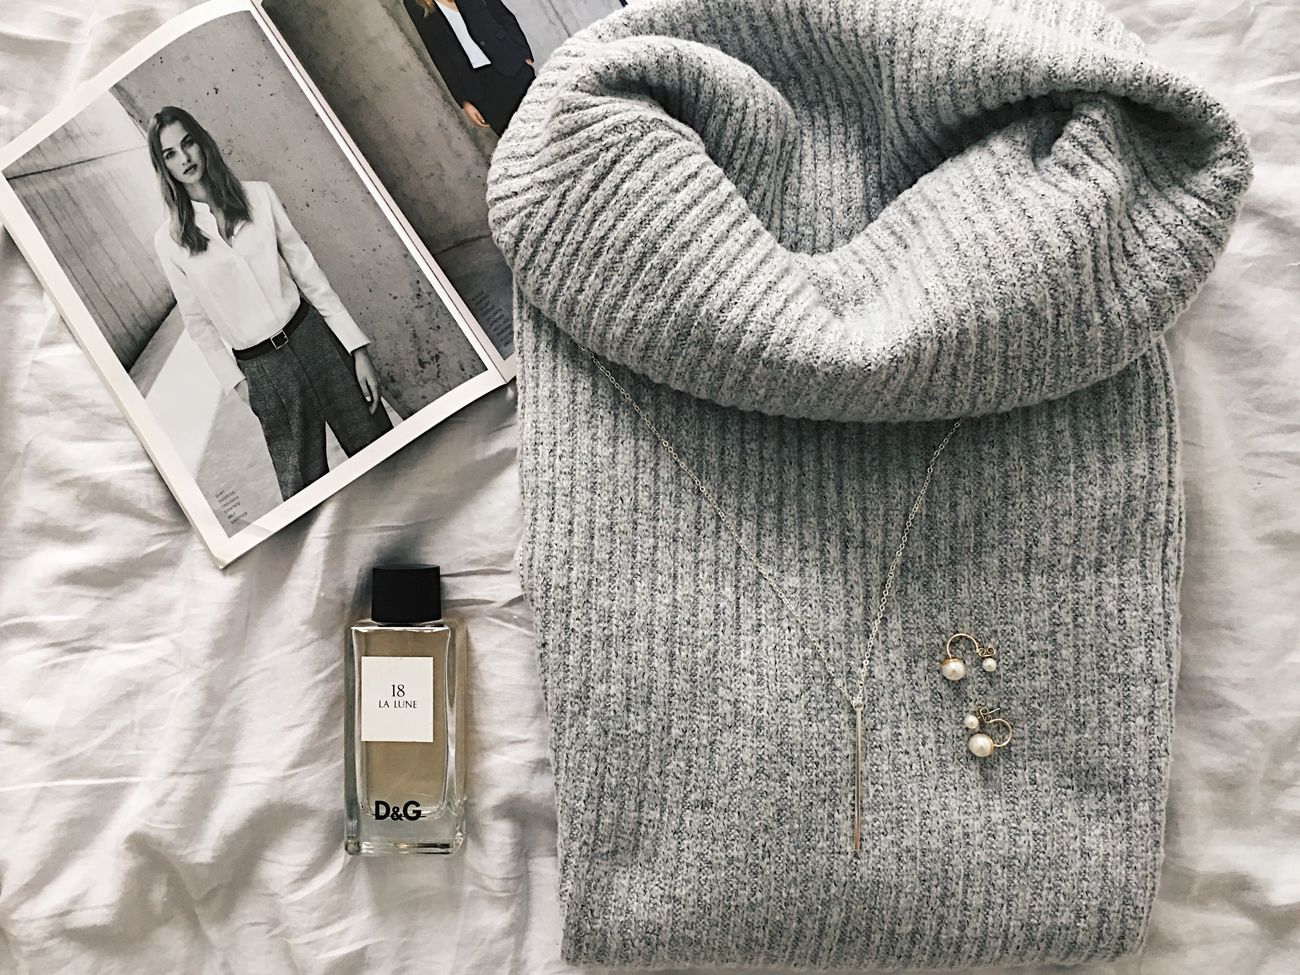 Fashion flatlay Flatlay Fashion Grey Sweater Knitwear Jewelry Photography Jewelry Fashionista Style Style And Fashion Styleblogger Minimalism Minimal Warm Clothing Magazine Accessory Accesories Earring  Pendant Necklace Wintertime Winter Warm